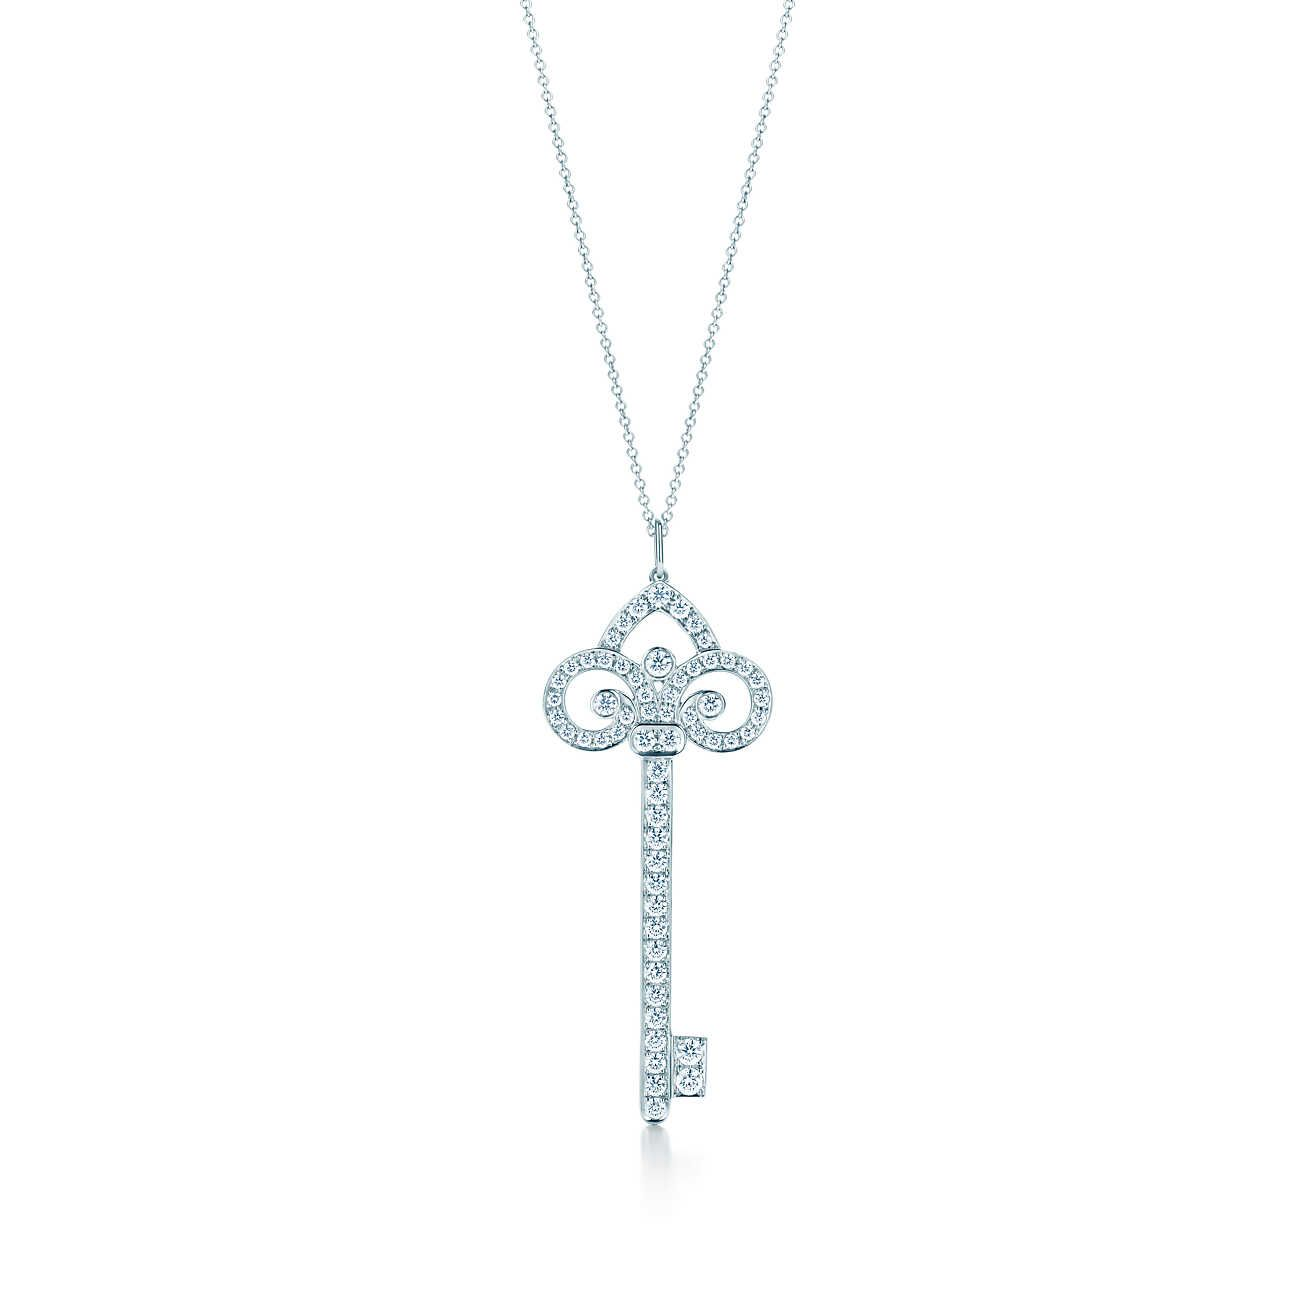 91a19183f Fleur de Lis Key Pendant in 2019 | Necklaces | Tiffany key, Tiffany ...